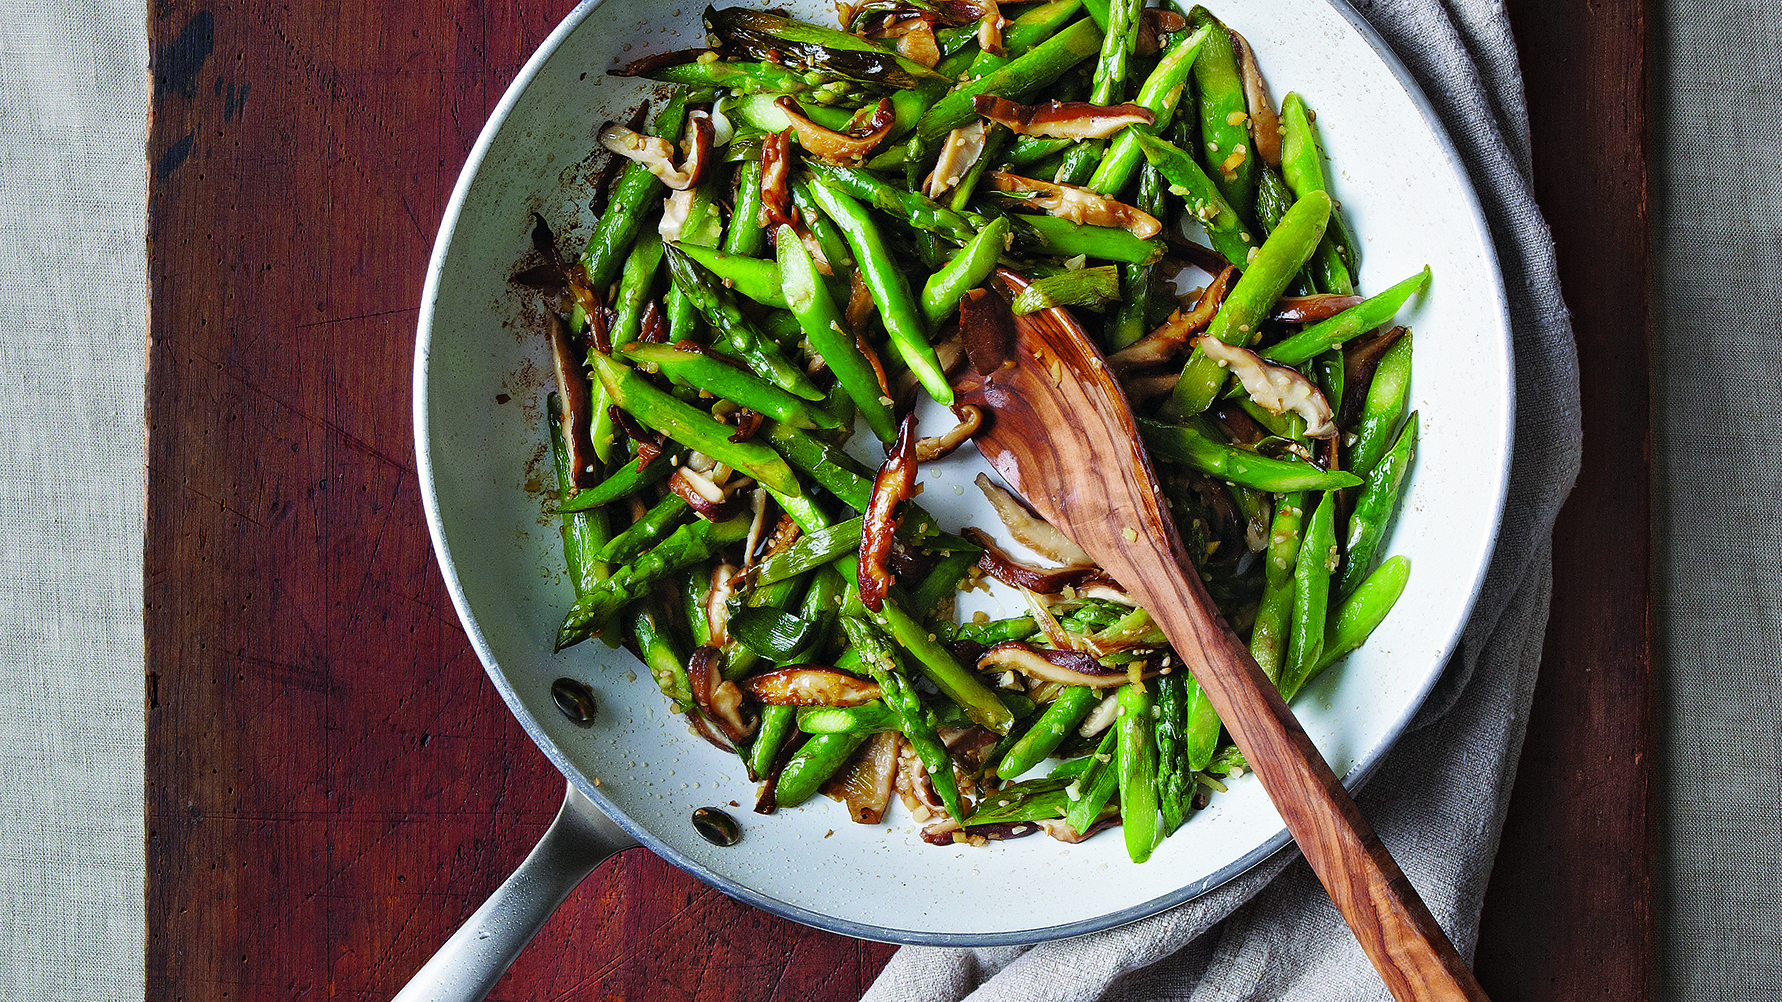 Stir-Fried Asparagus and Shiitake with Ginger and Sesame